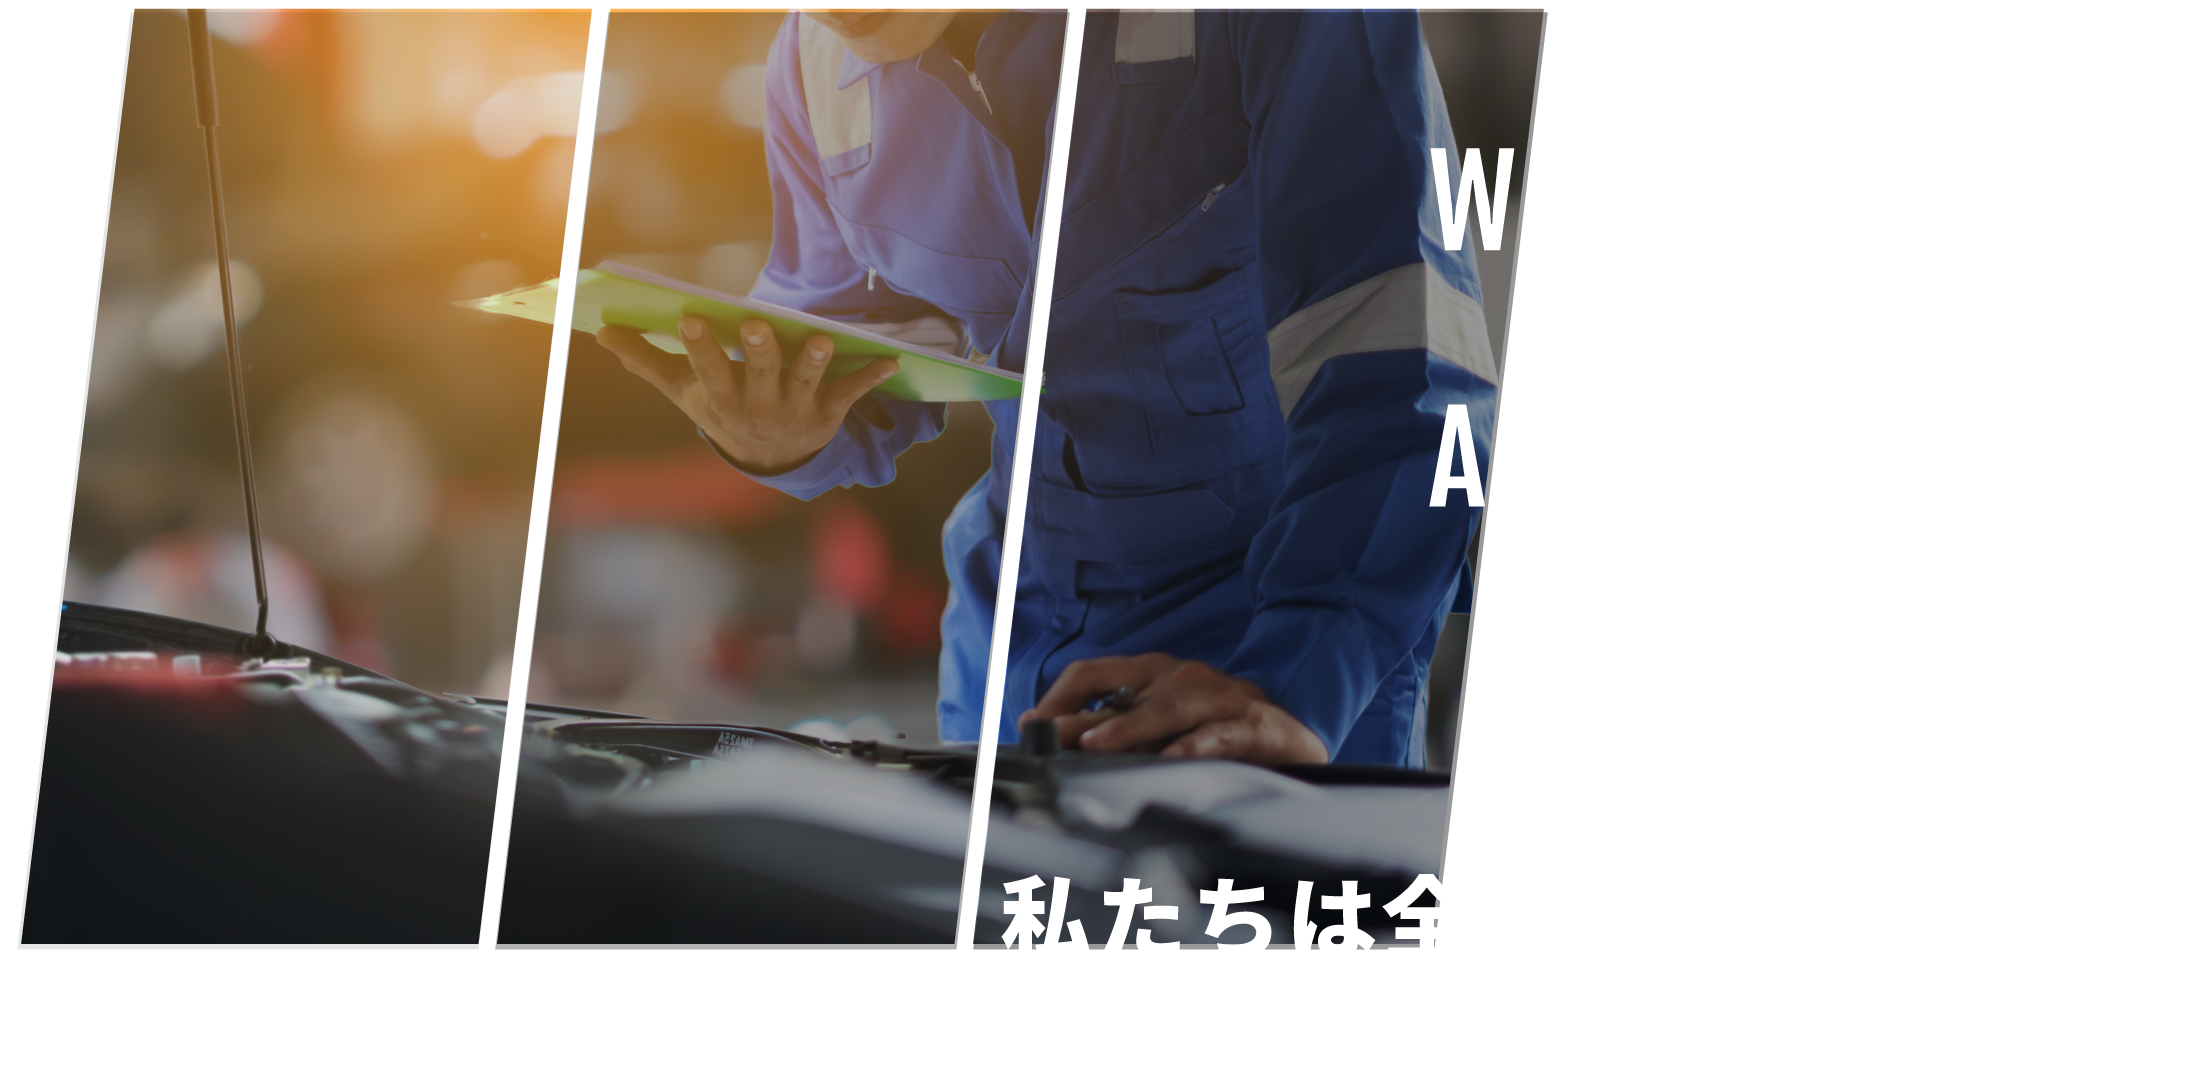 WE ARE EXPERT OF AUTO PARTS INSPECTION 私たちは全ての自動車部品に関する検査の専門家です。